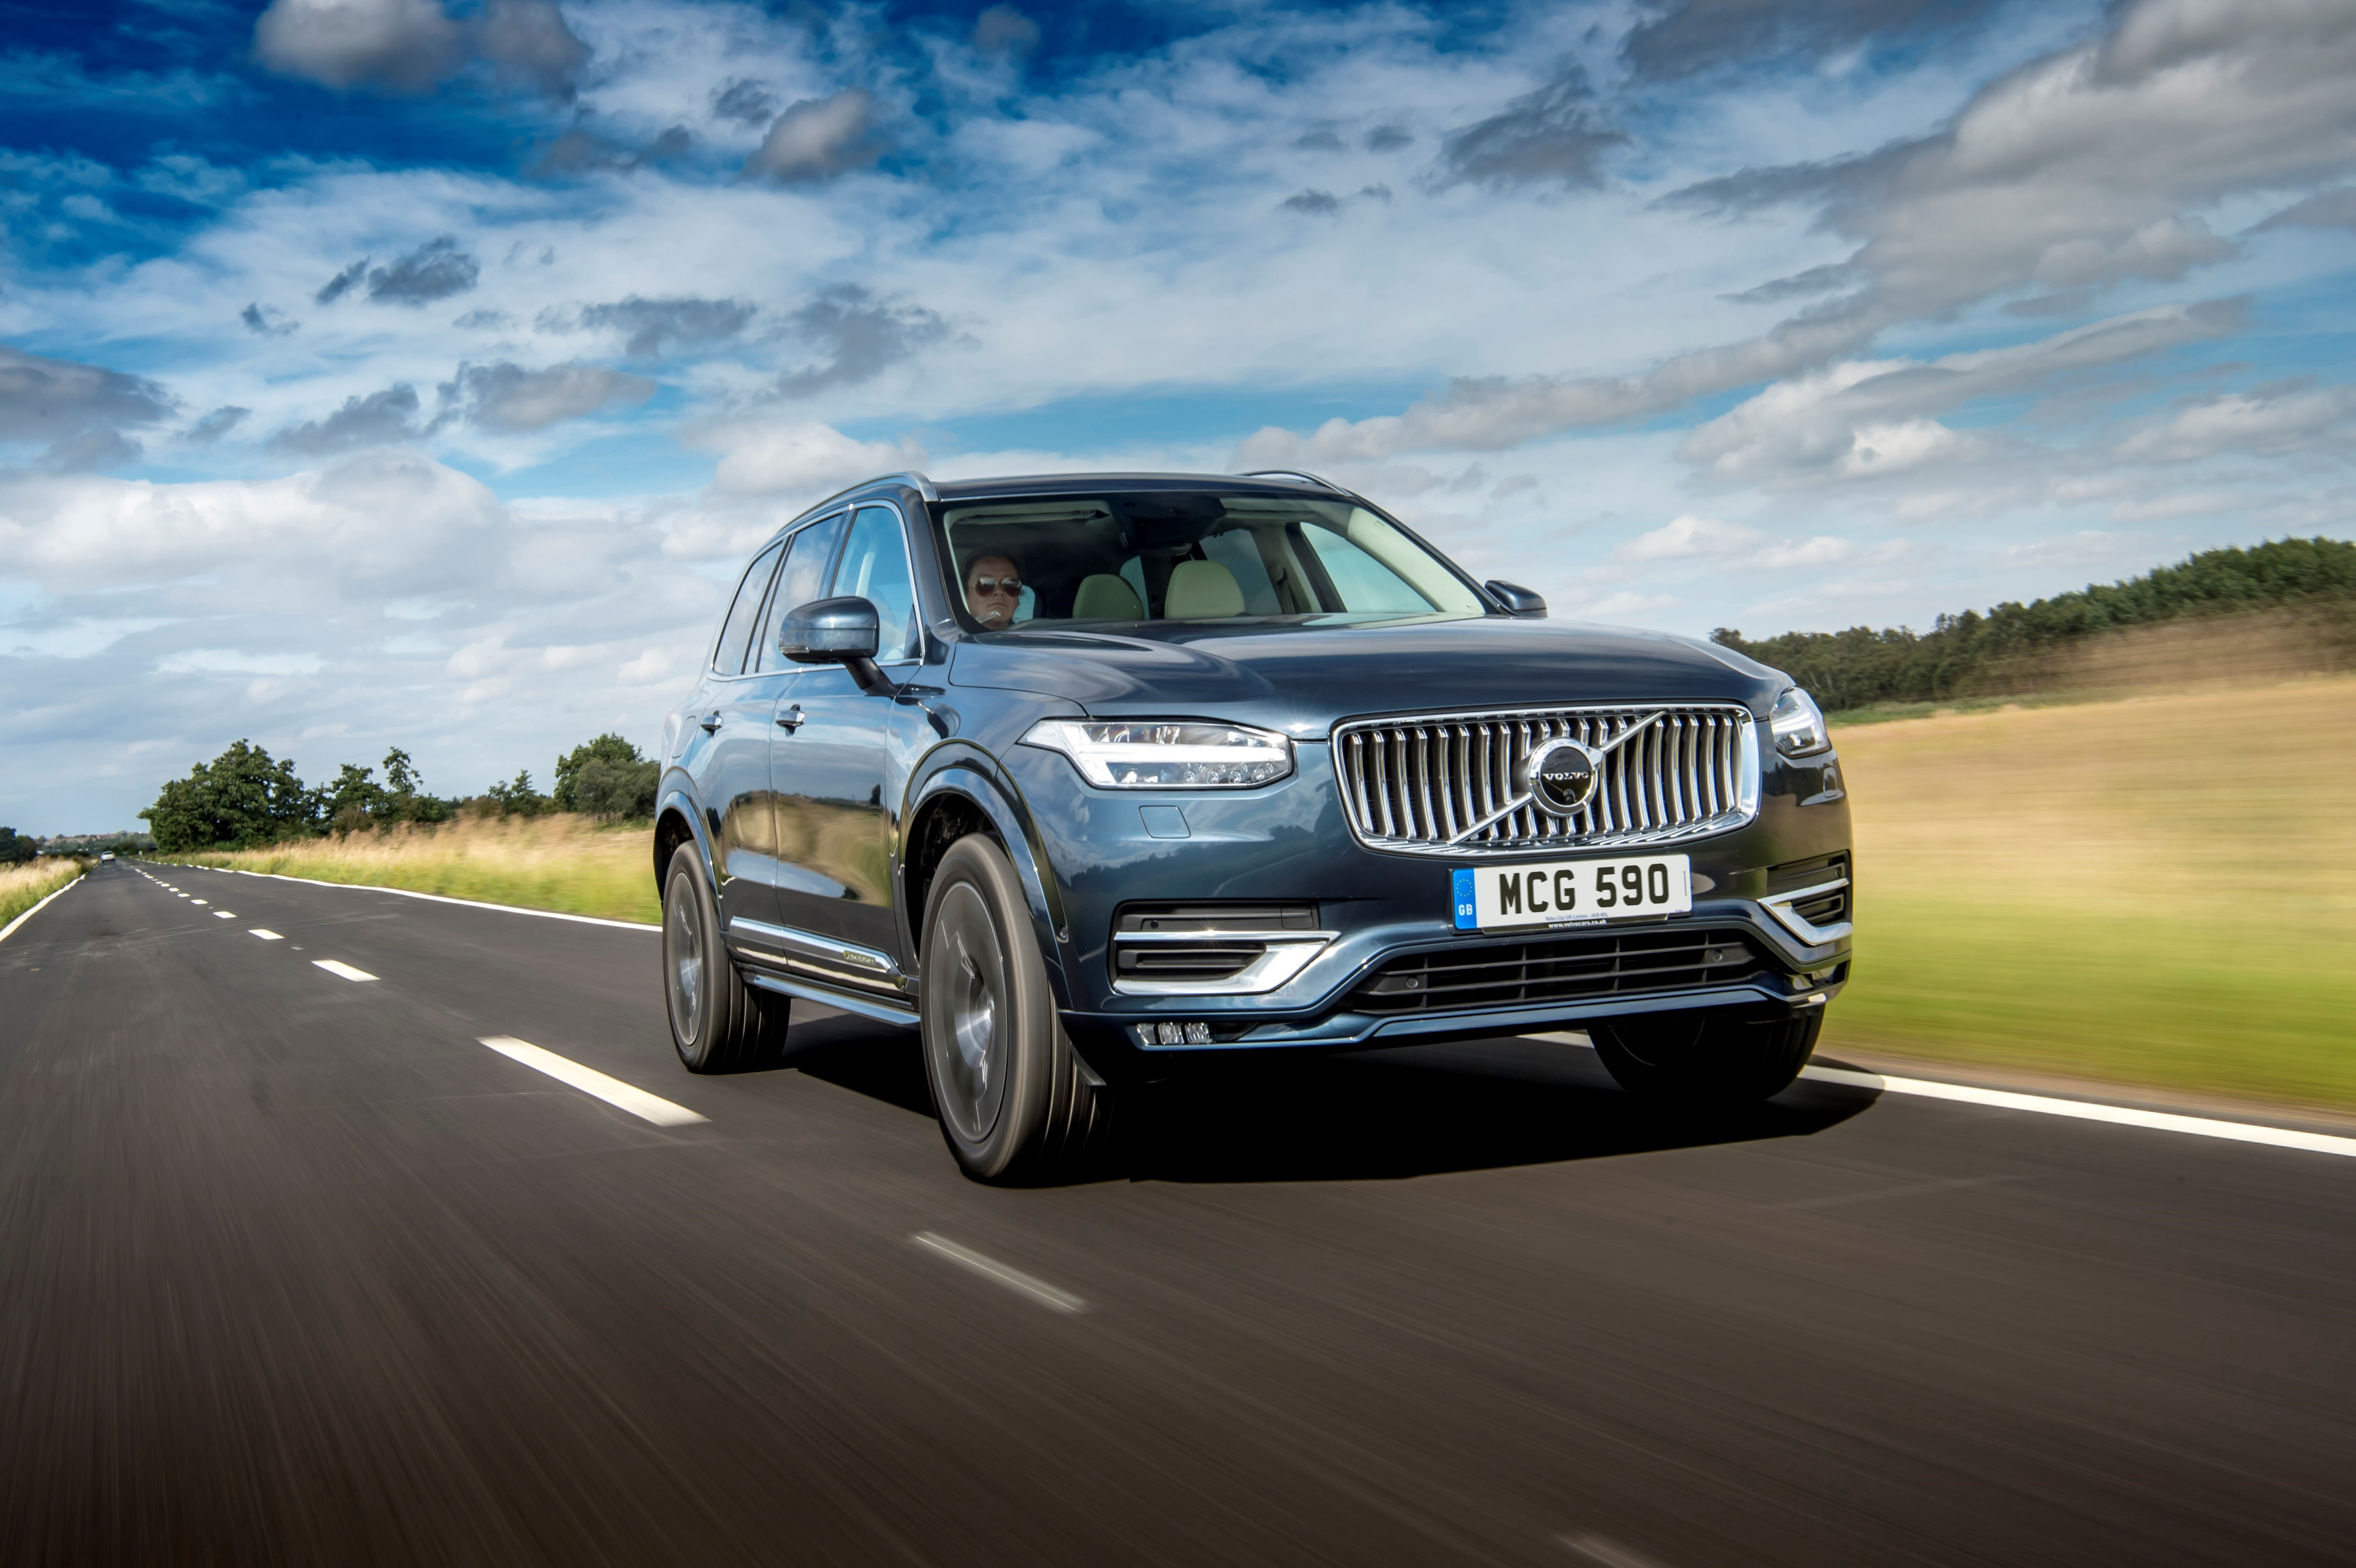 Well-sorted suspension means the XC90 feels comfortable at all times